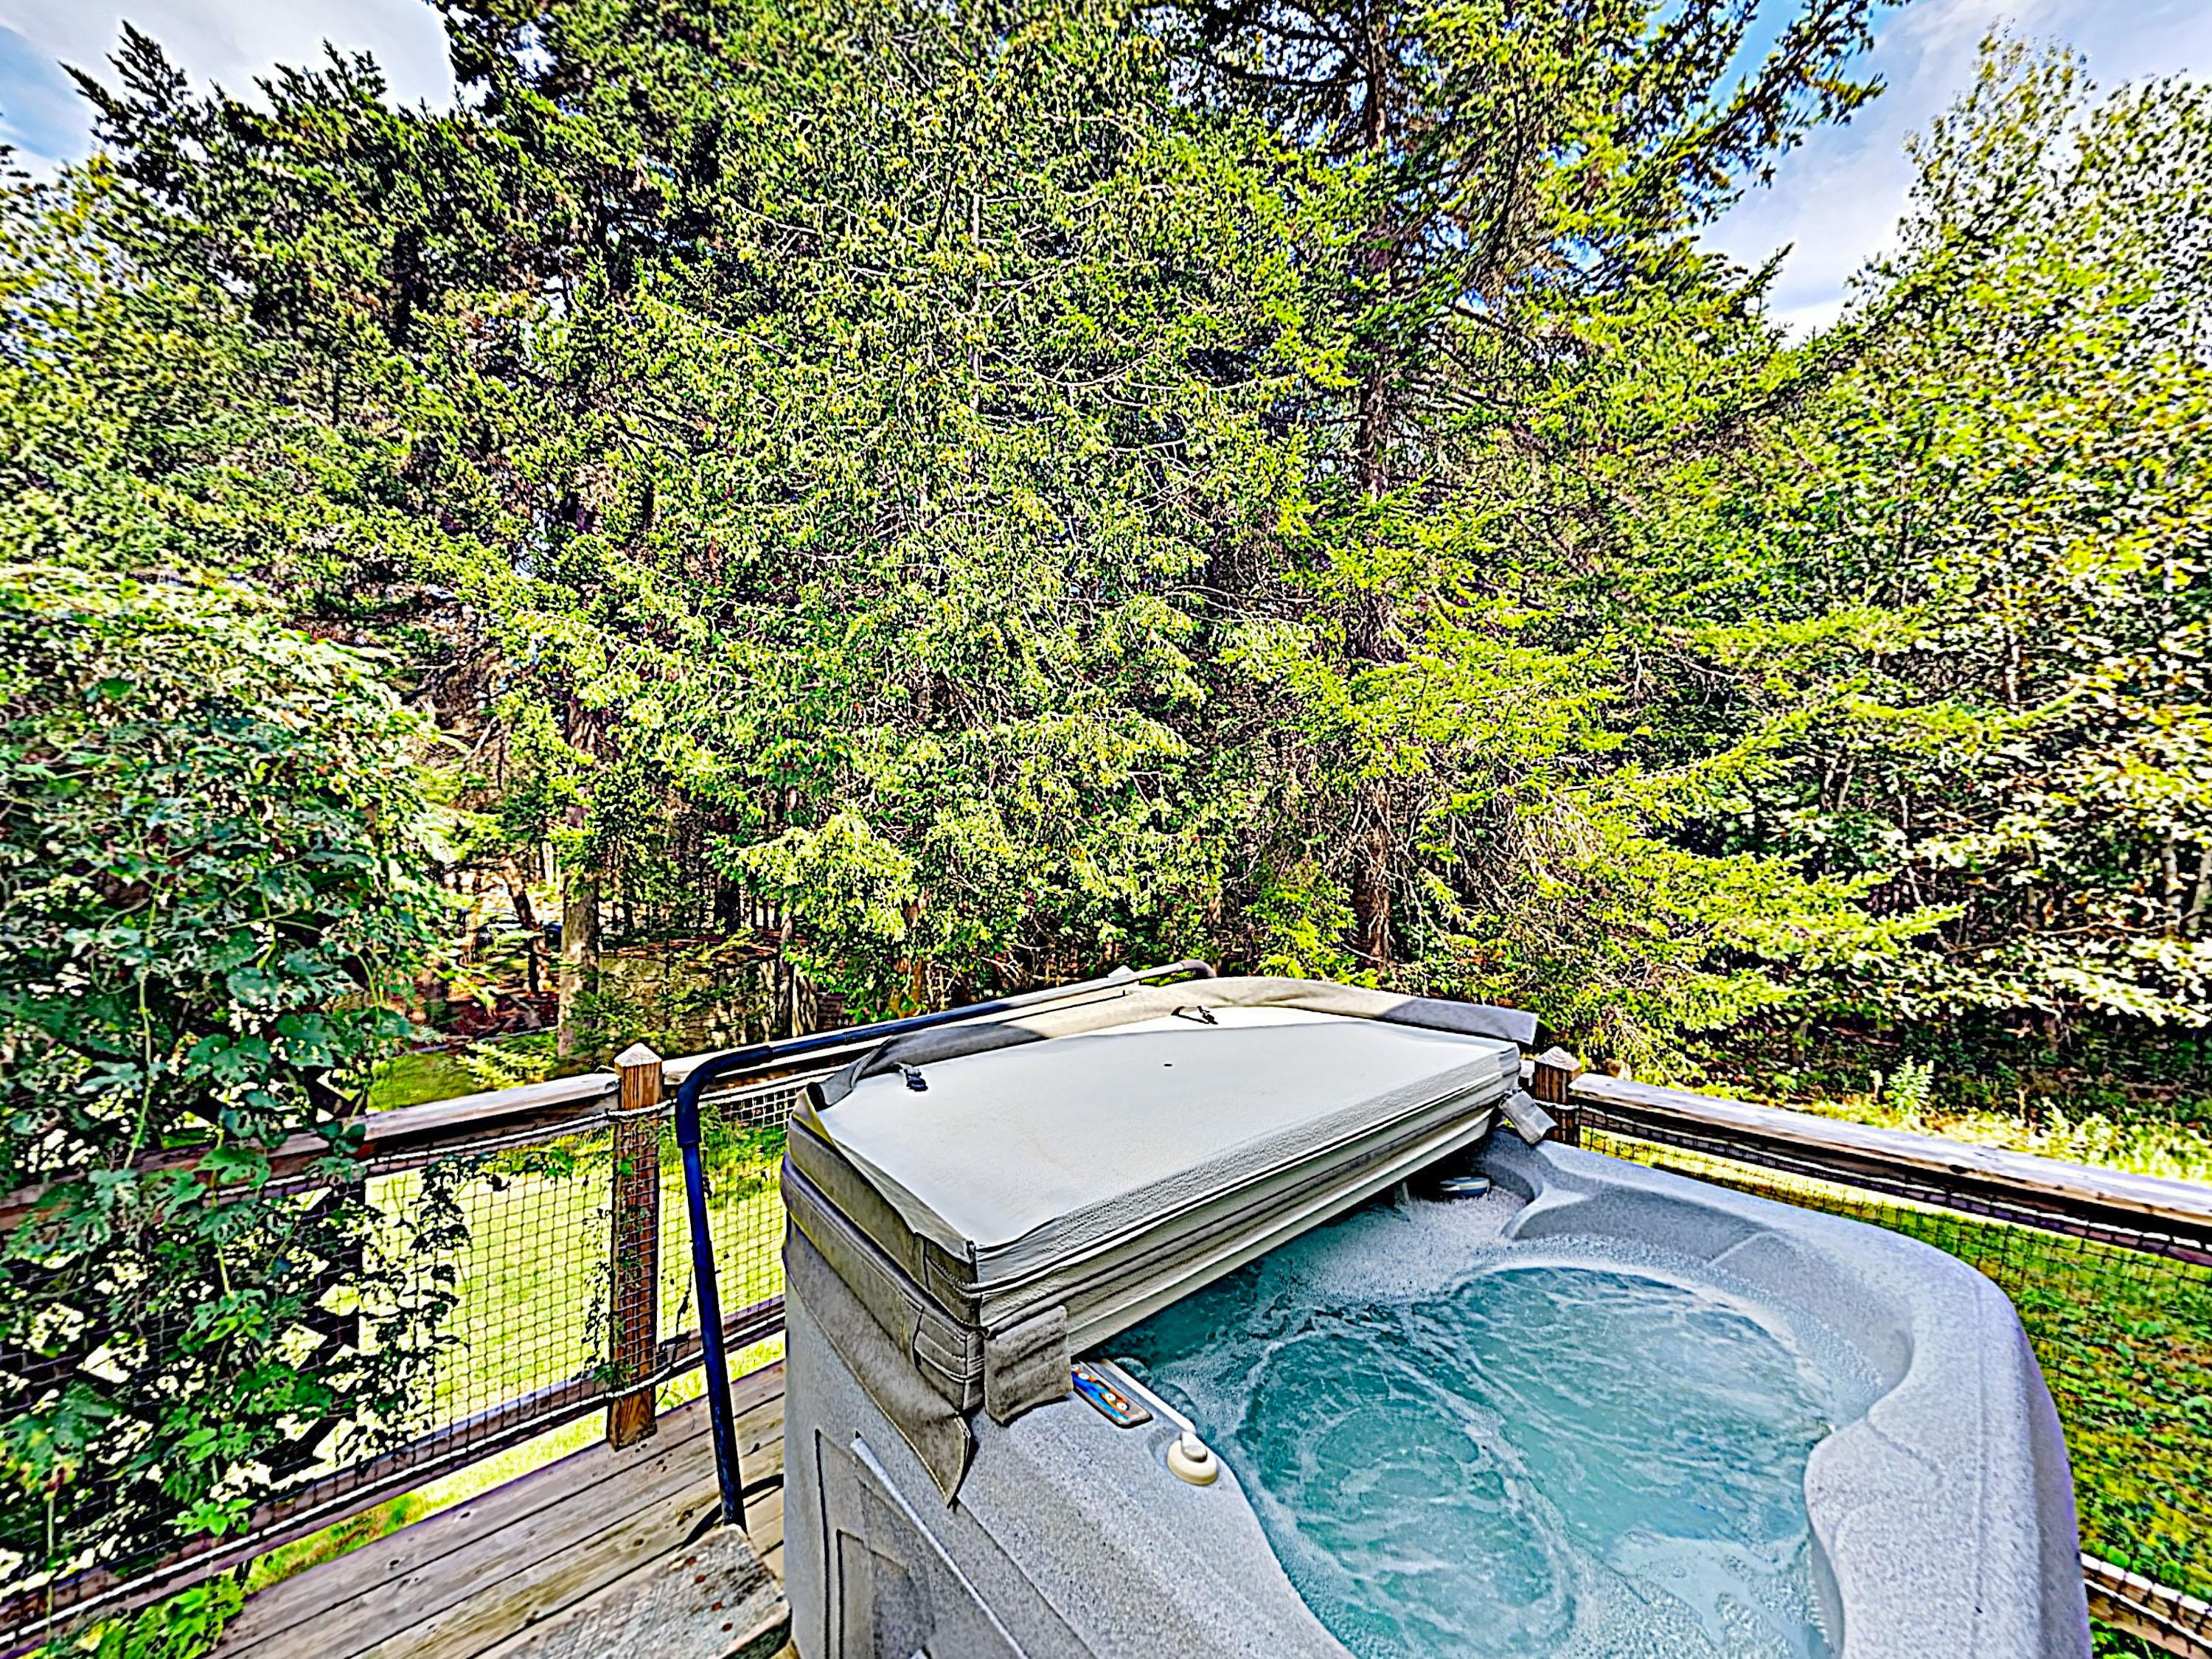 Take a rejuvenating soak in the private hot tub.